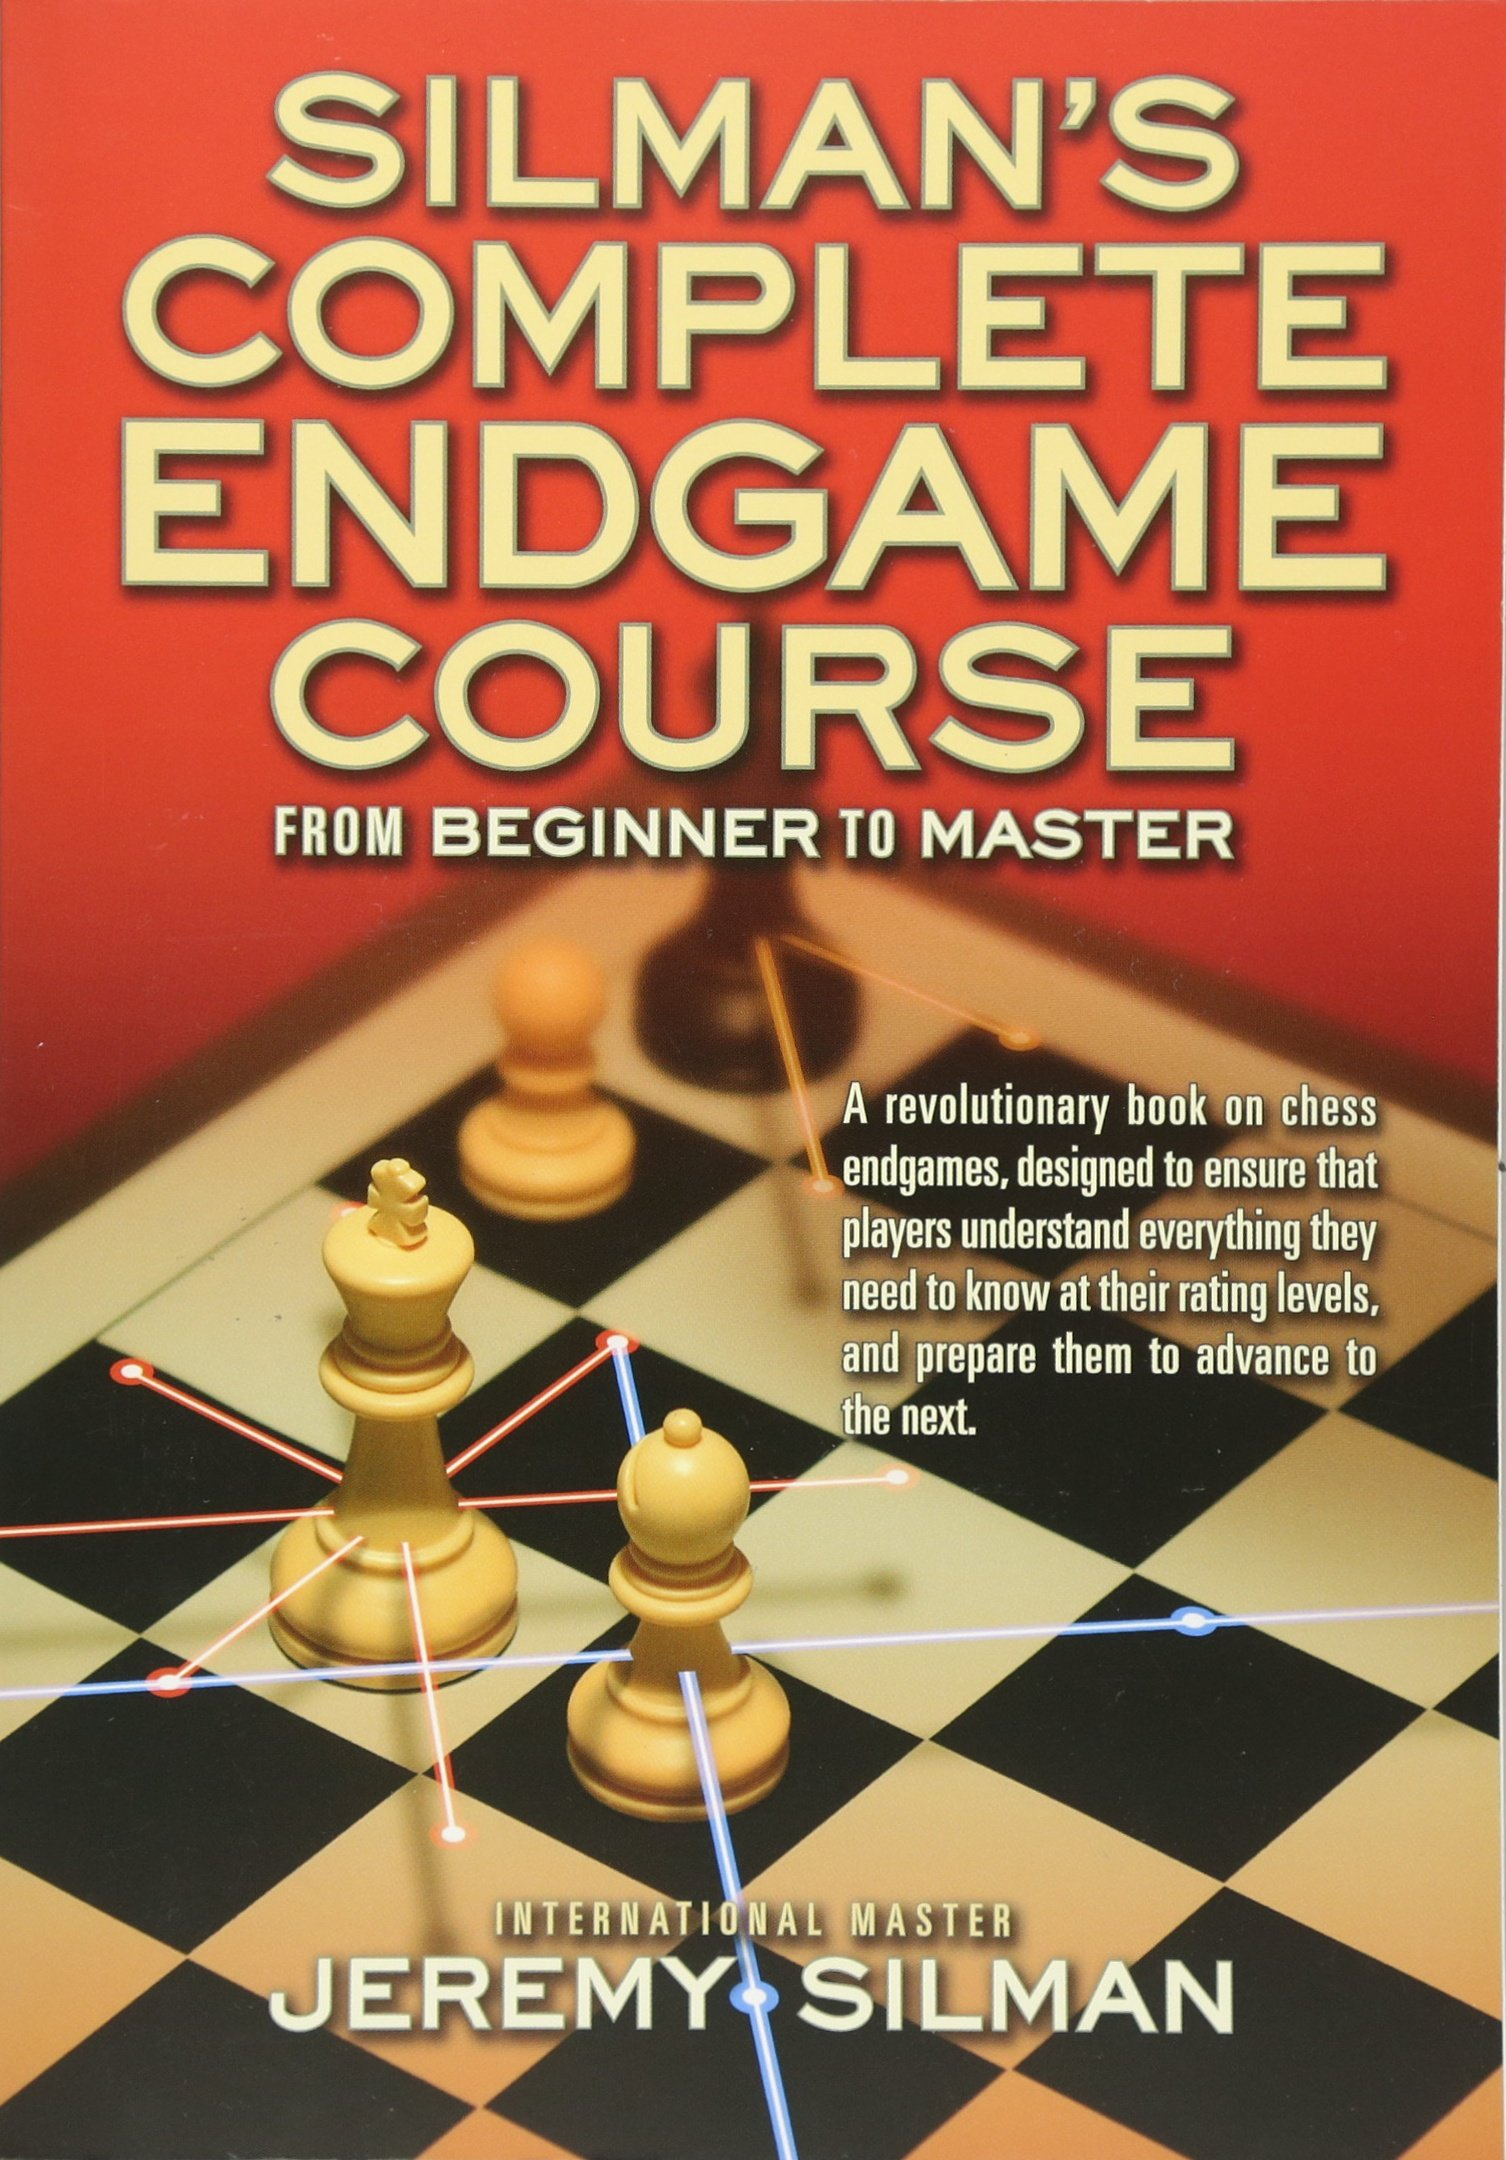 Download Silman's Complete Endgame Course: From Beginner To Master PDF